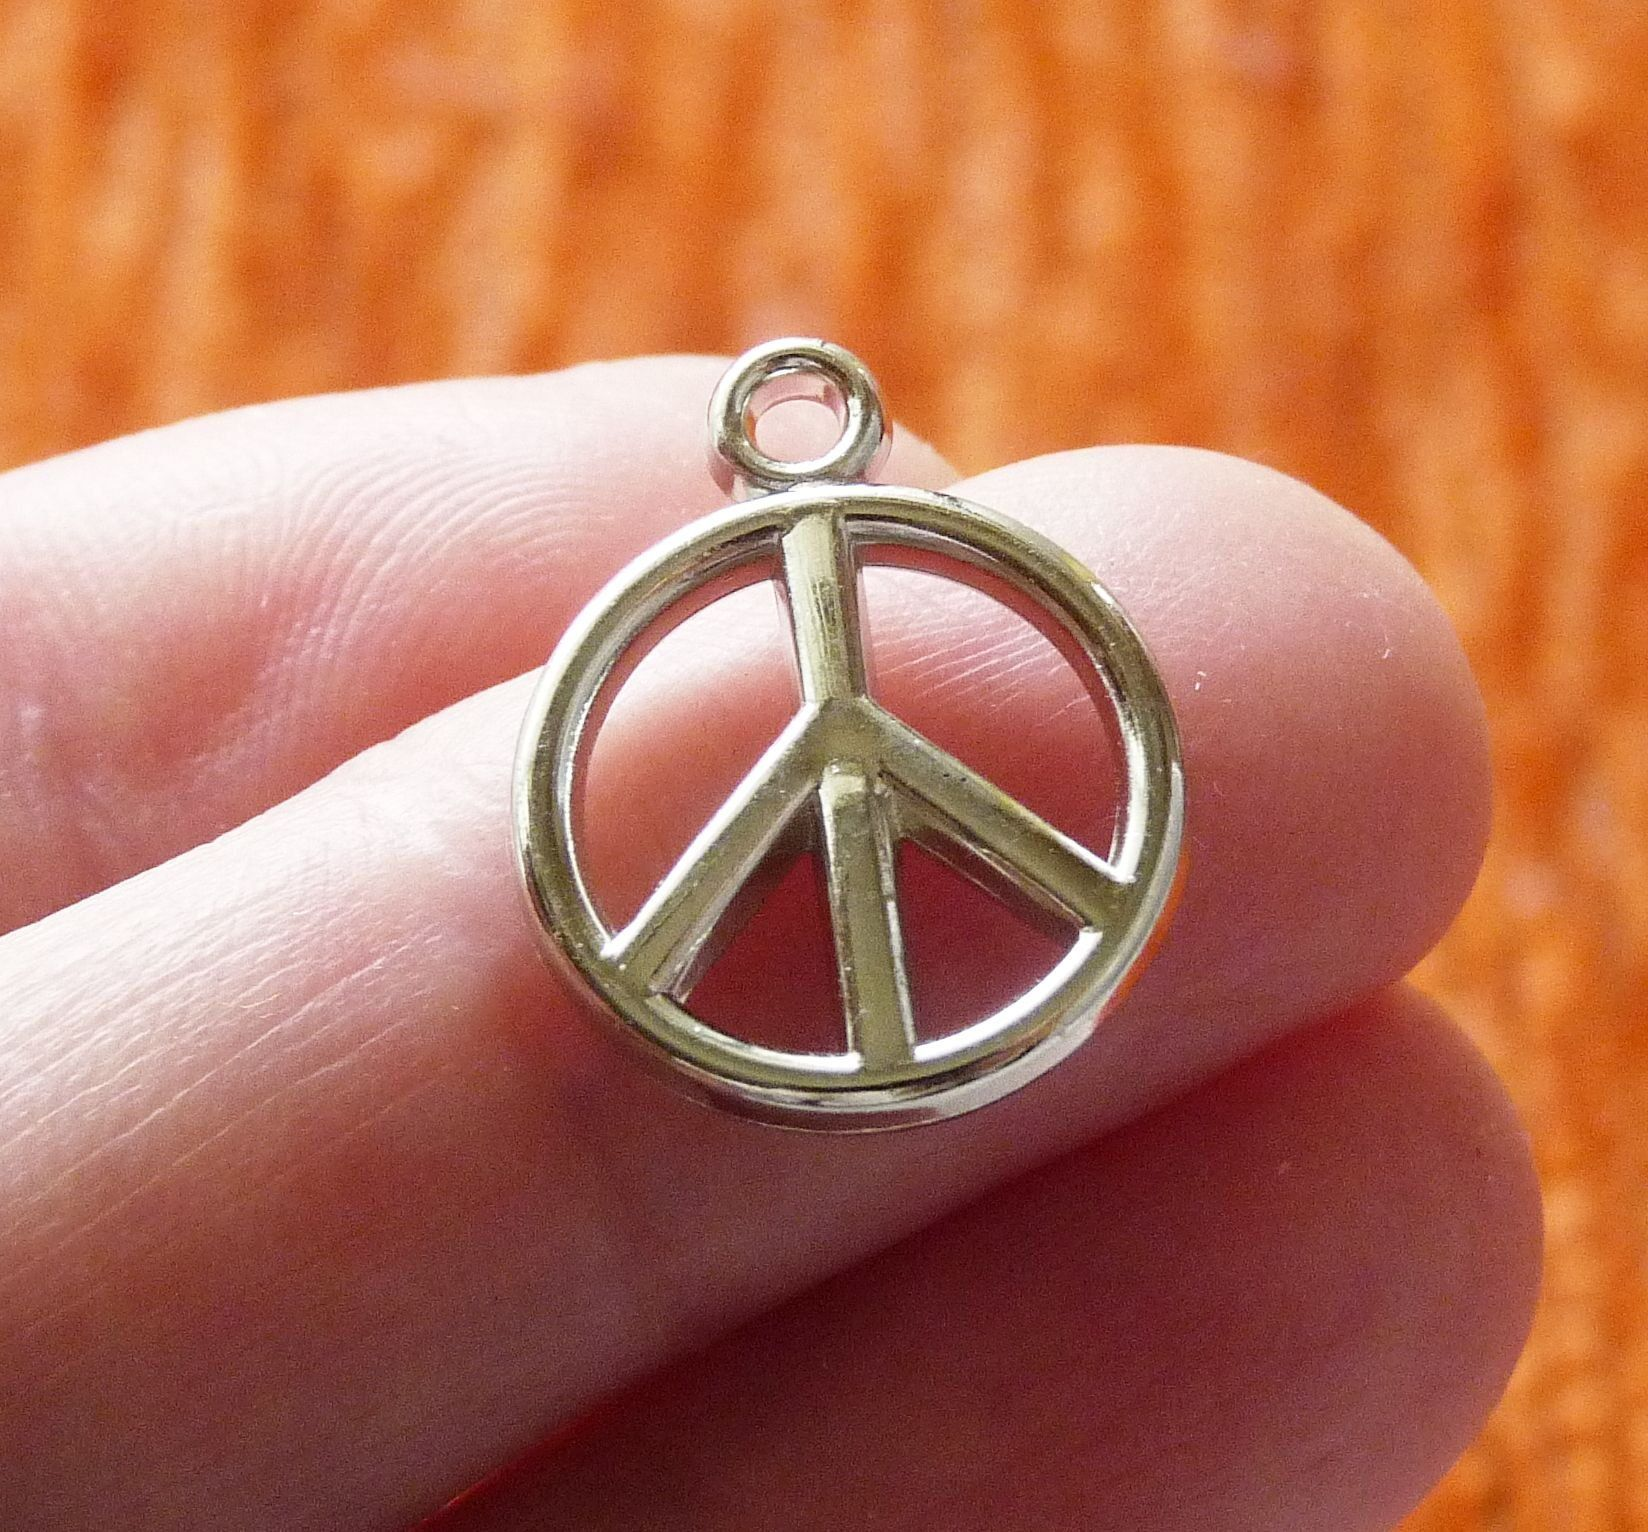 35++ Peace sign jewelry near me viral